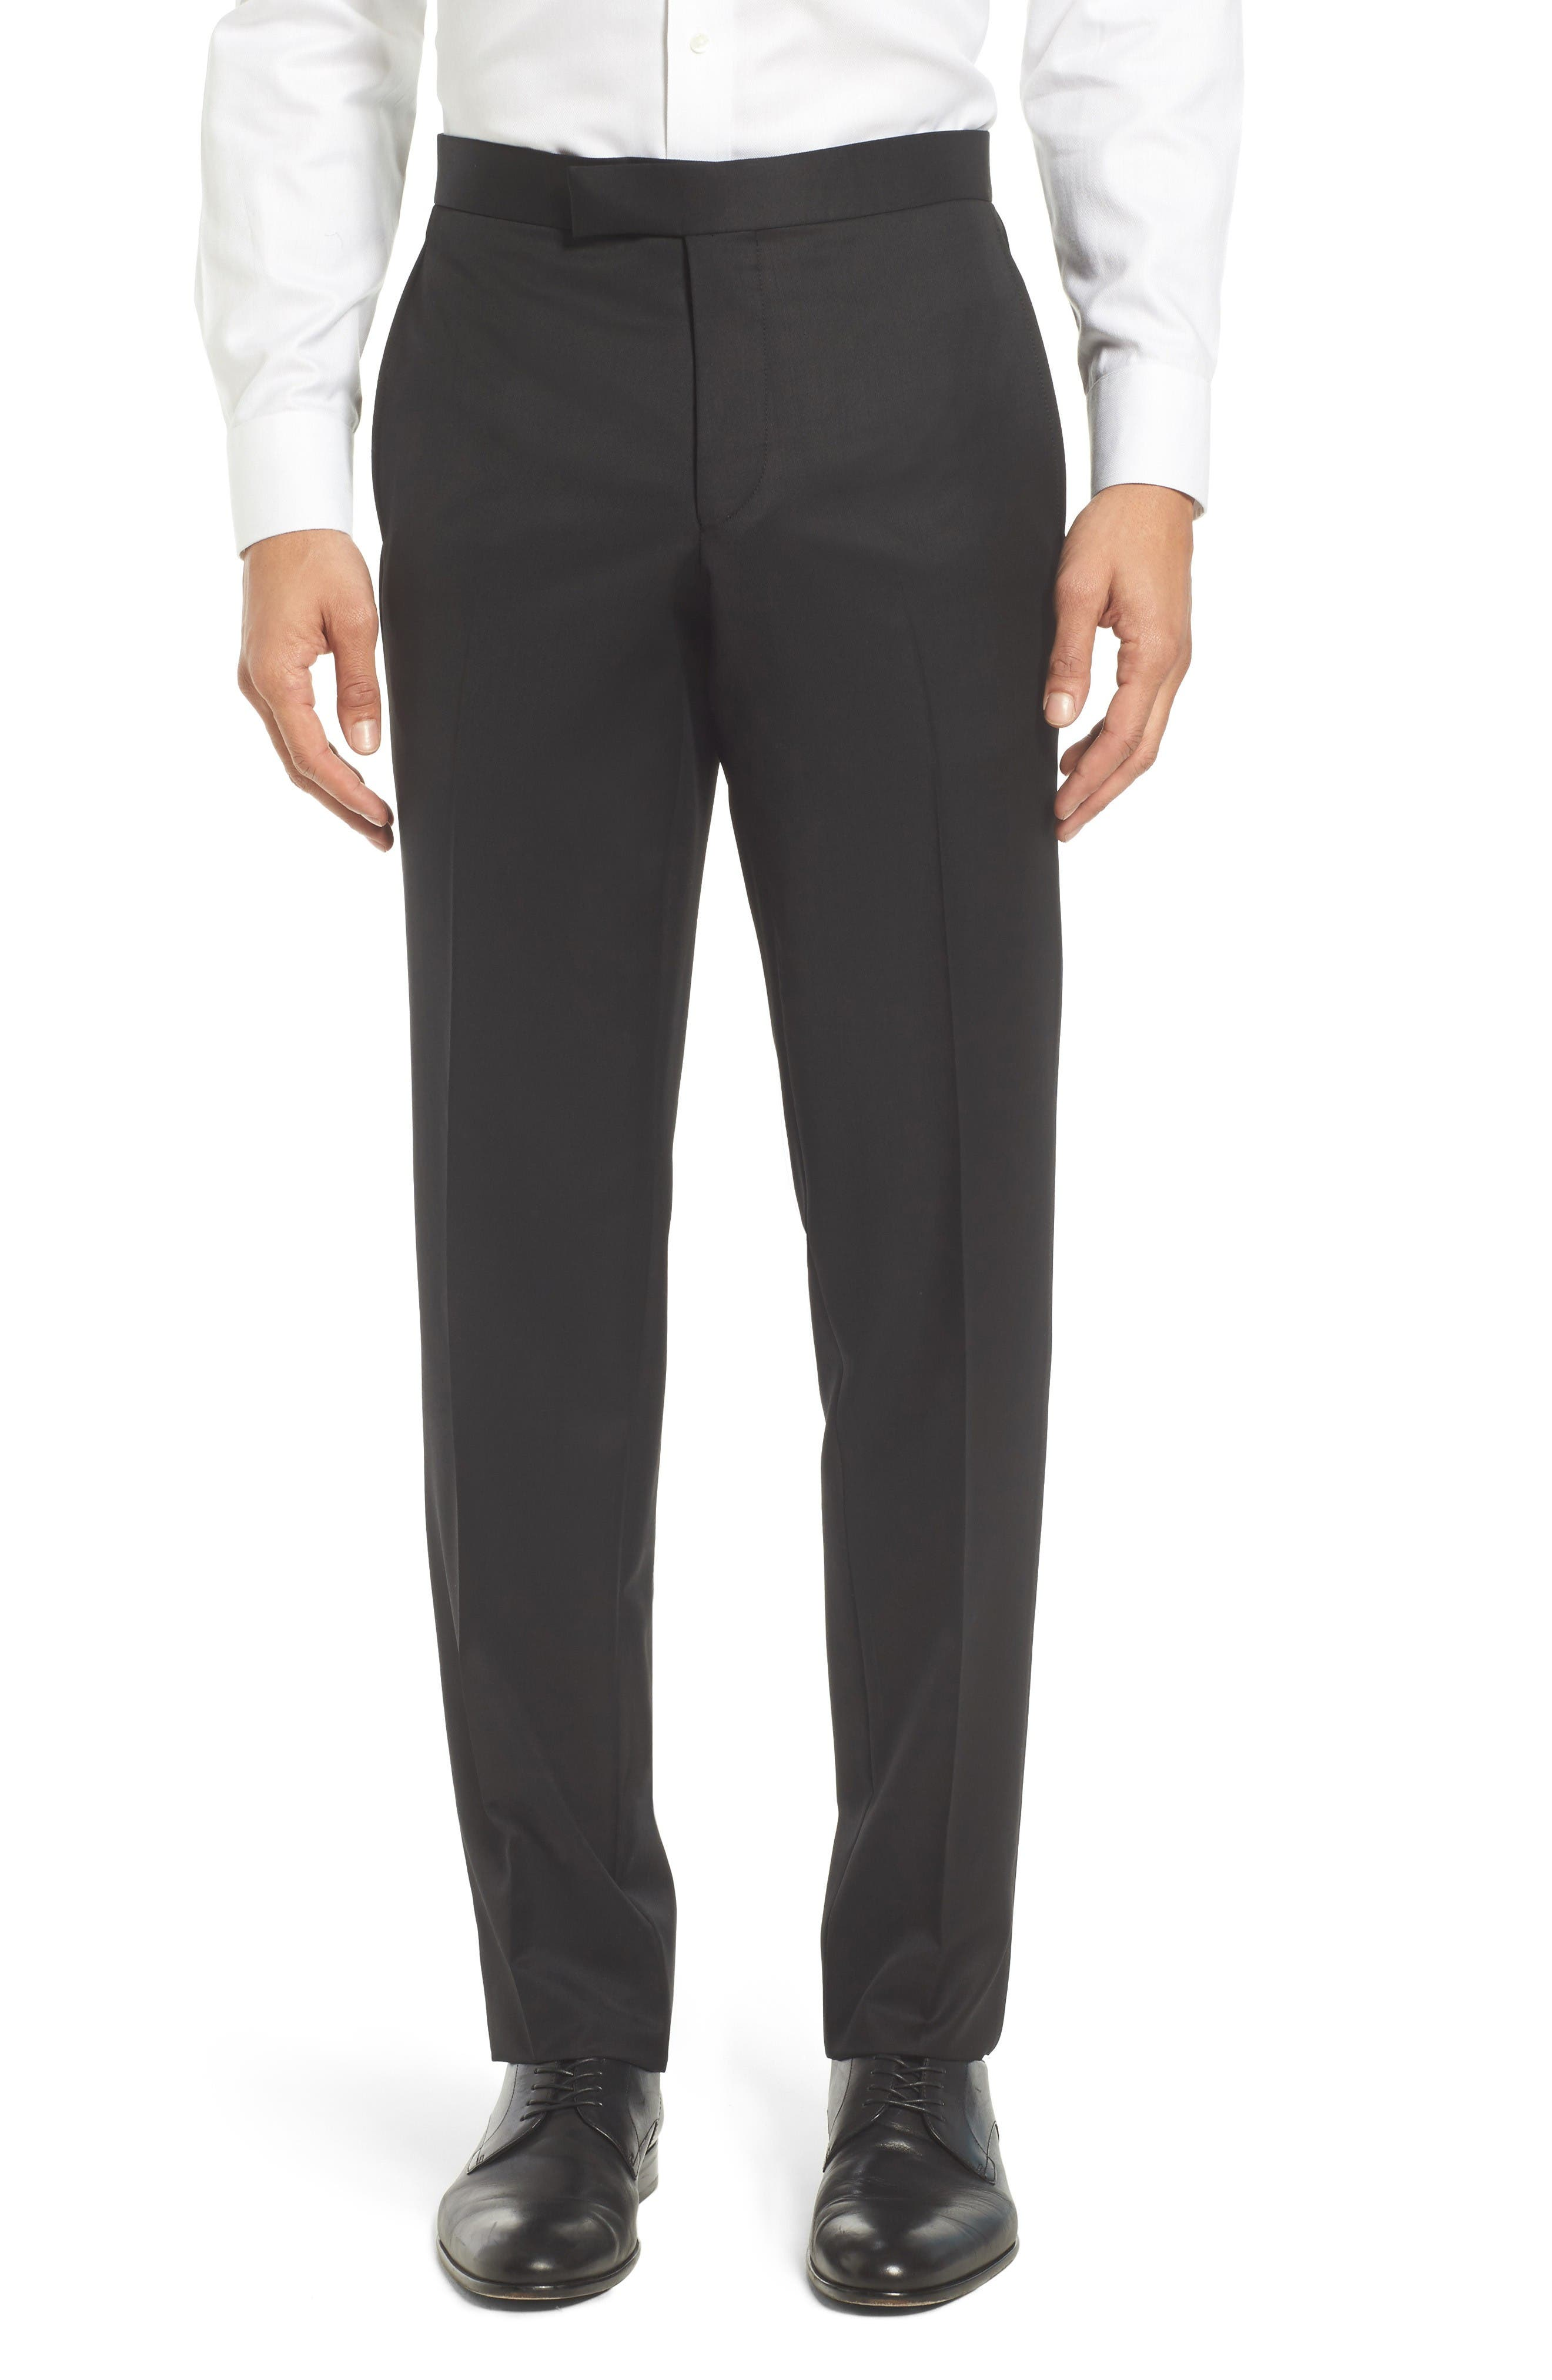 TED BAKER LONDON Josh Flat Front Wool & Mohair Formal Trousers